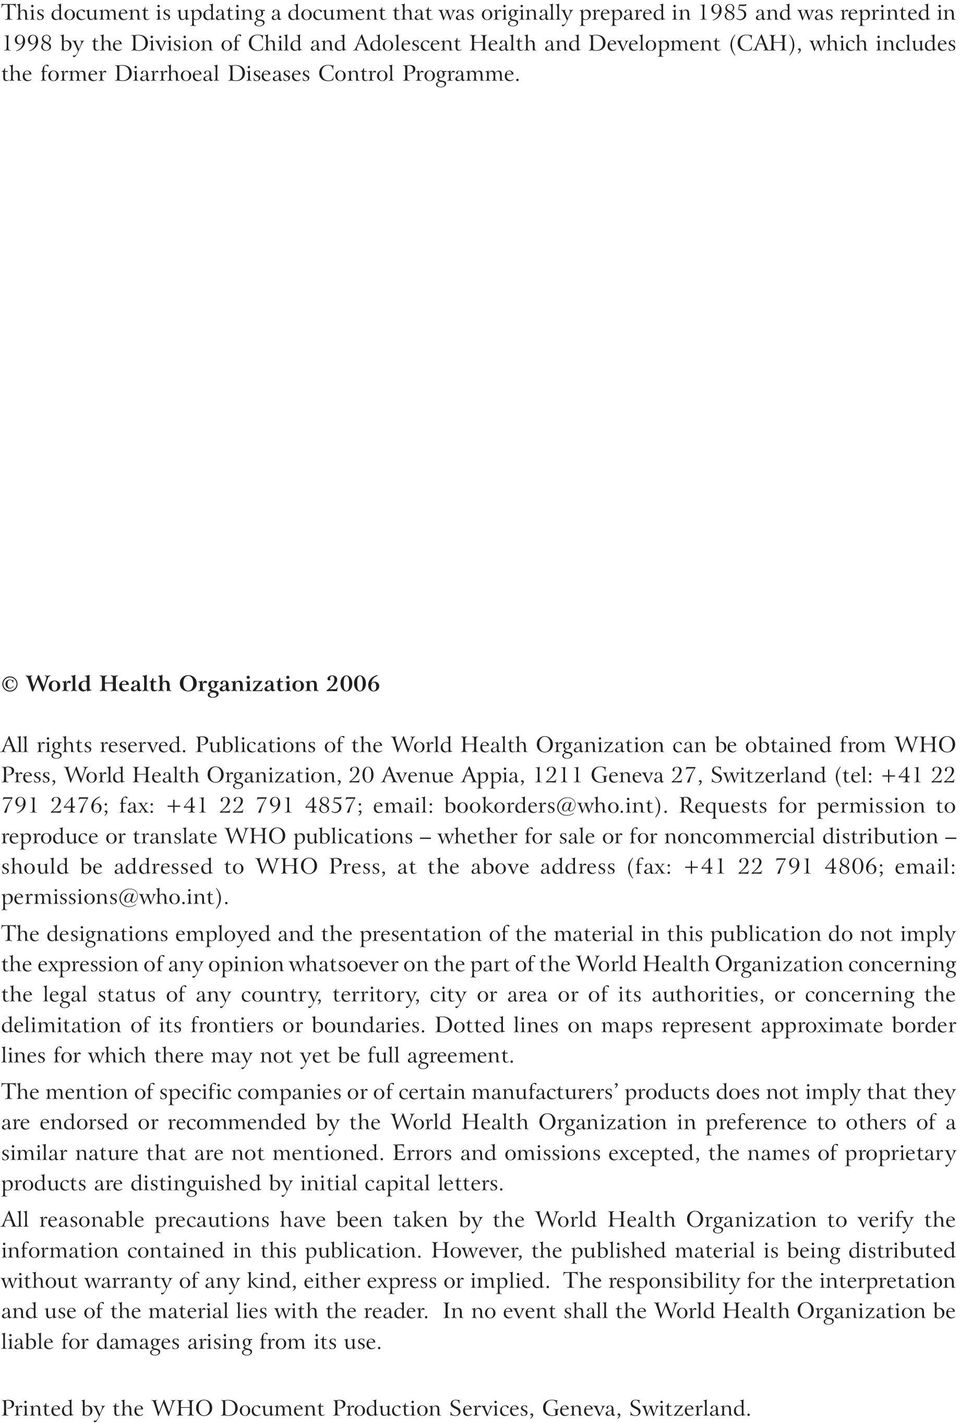 Publications of the World Health Organization can be obtained from WHO Press, World Health Organization, 20 Avenue Appia, 1211 Geneva 27, Switzerland (tel: +41 22 791 2476; fax: +41 22 791 4857;